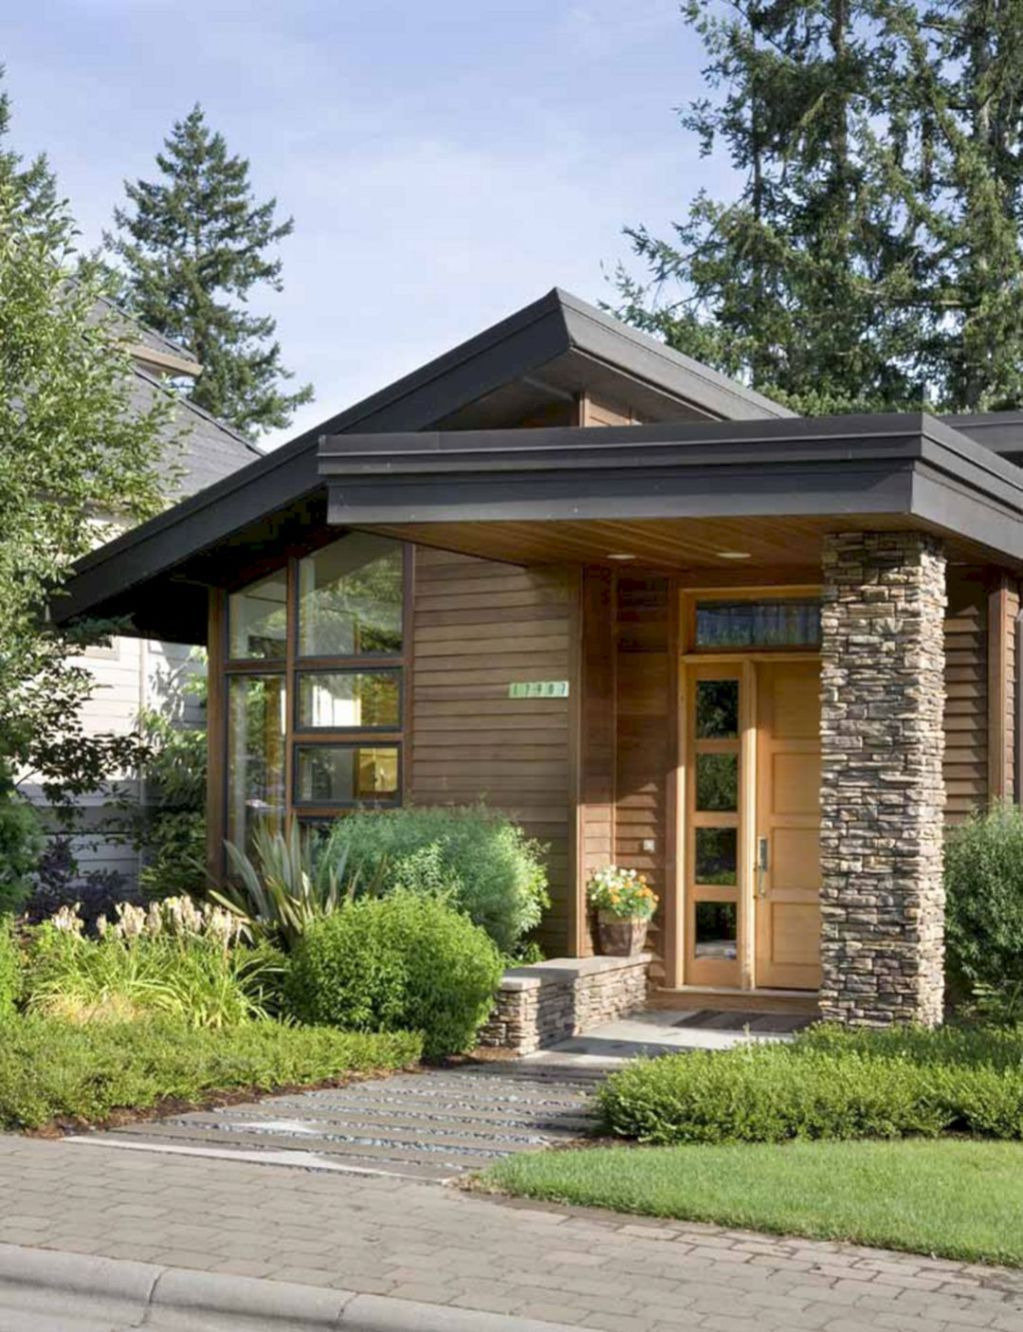 Pictures Of Small Modern Houses Lovely top 10 Modern Tiny House Design and Small Homes Collections